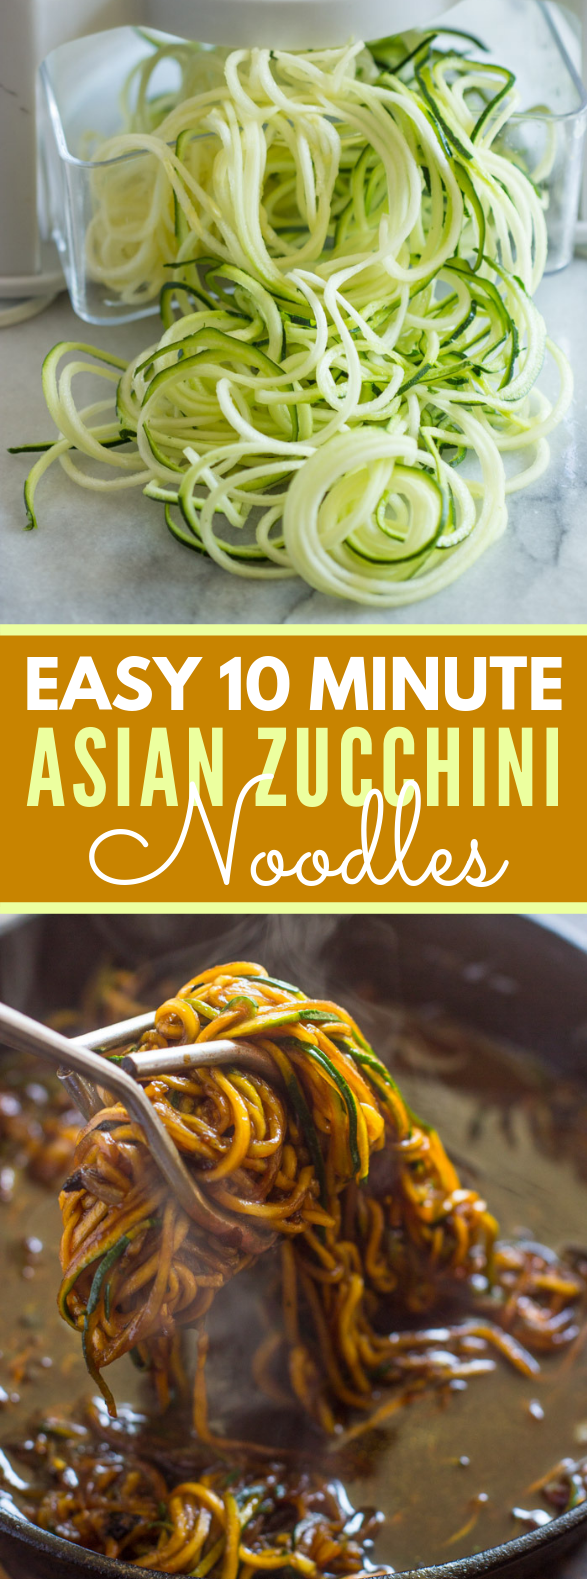 EASY 10 MINUTE ASIAN ZUCCHINI NOODLES (low-carb, Paleo) #diet #vegetariandiet